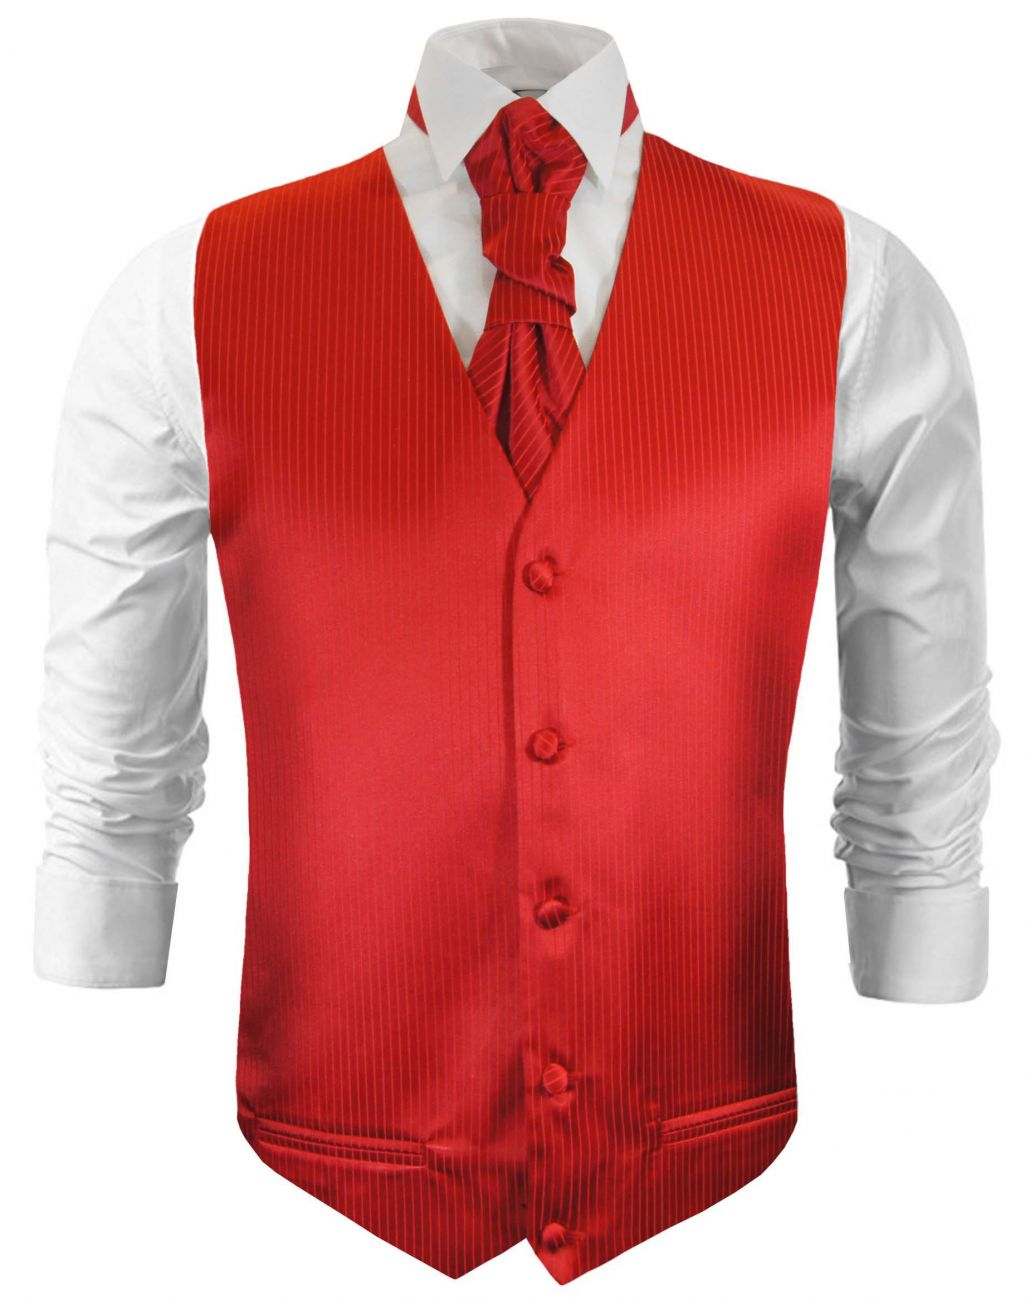 Red striped wedding vest waistcoat with cravat